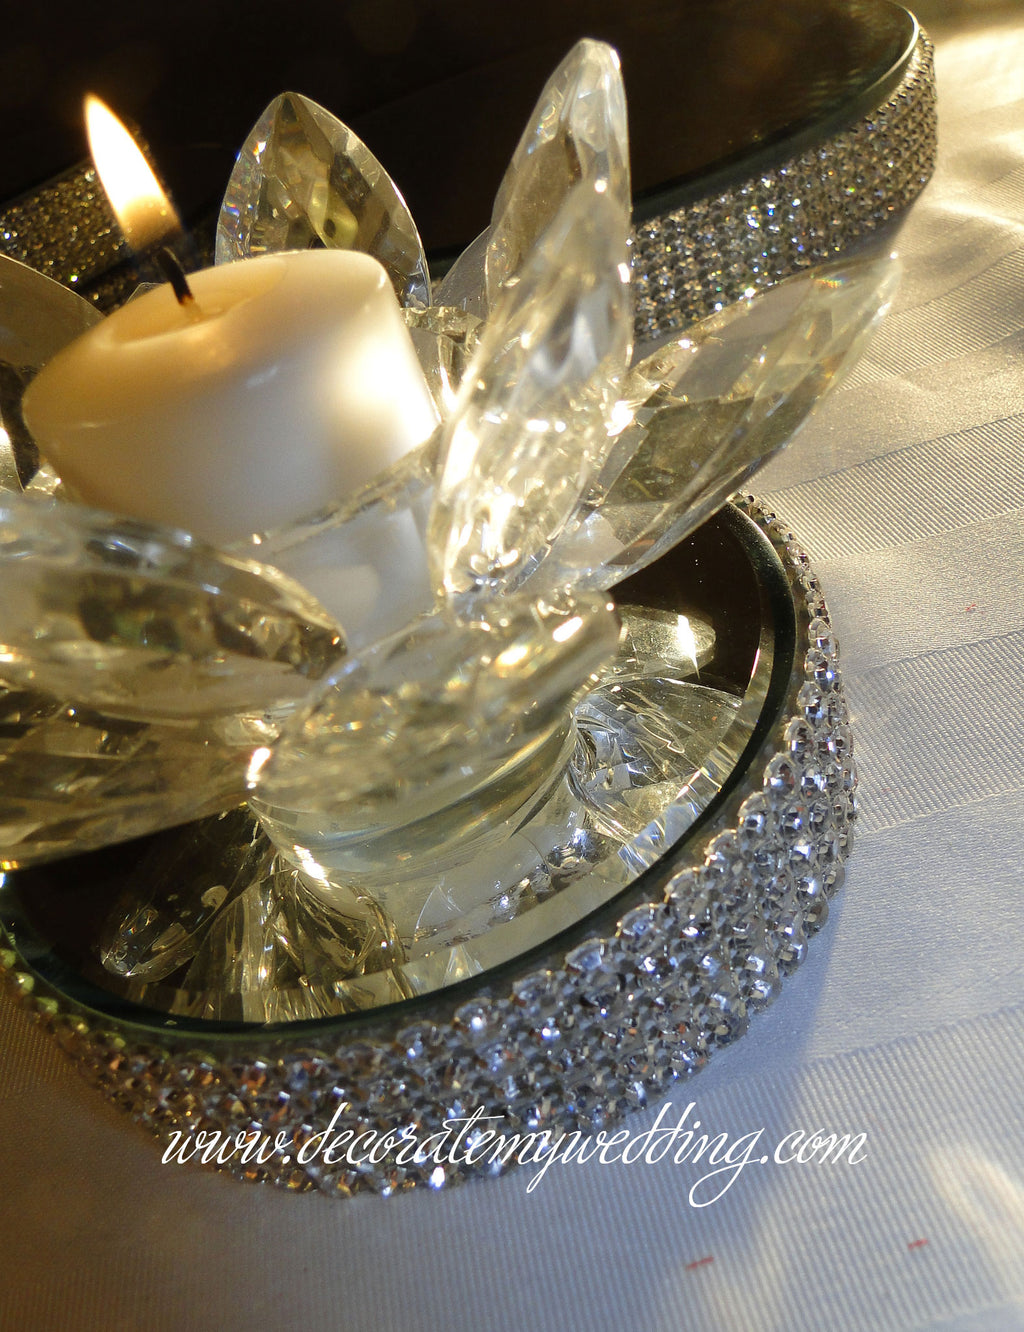 Decorate candle holder is wrapped with Swarovski rhinestone banding and a beautiful beveled mirror.